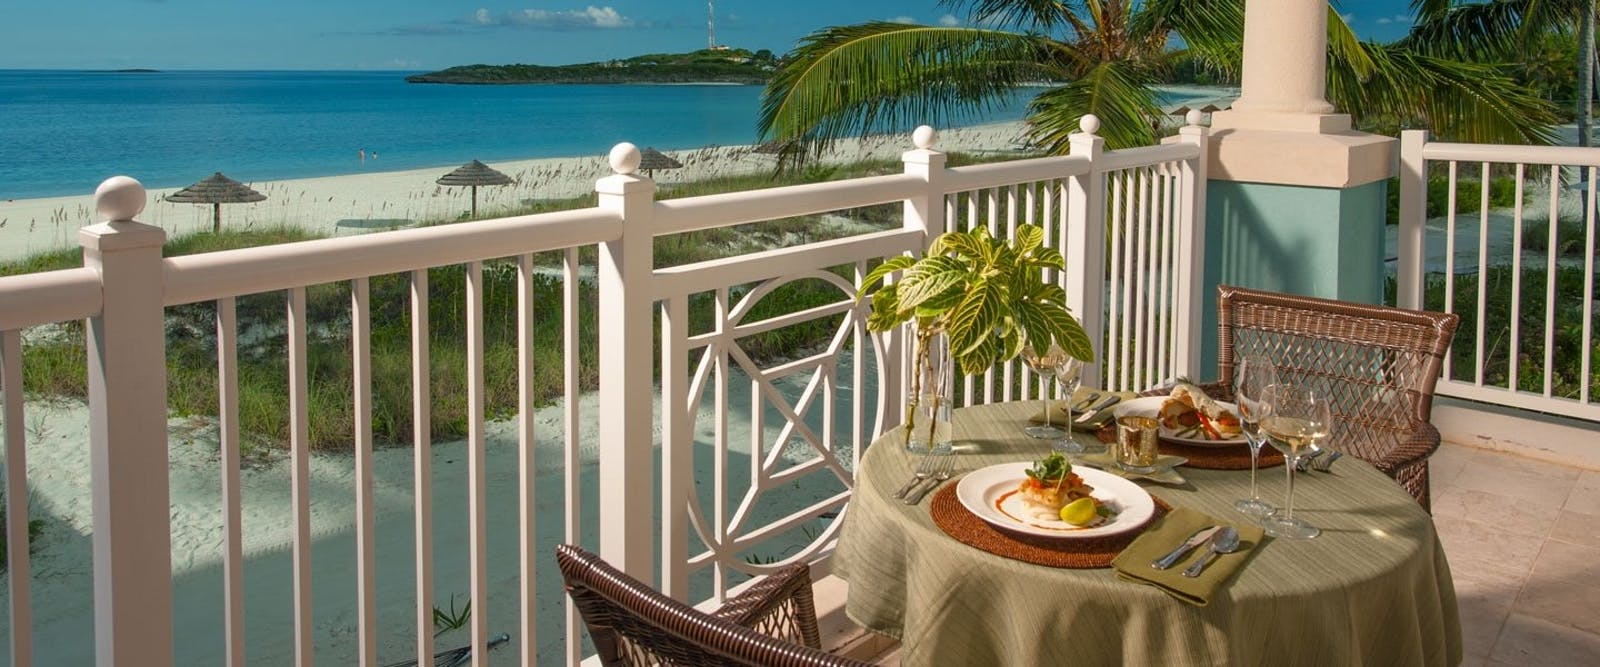 Honeymoon Beachfront Villa Suite Balcony at Sandals Emerald Bay Golf, Tennis & Spa Resort, Bahamas, Caribbean